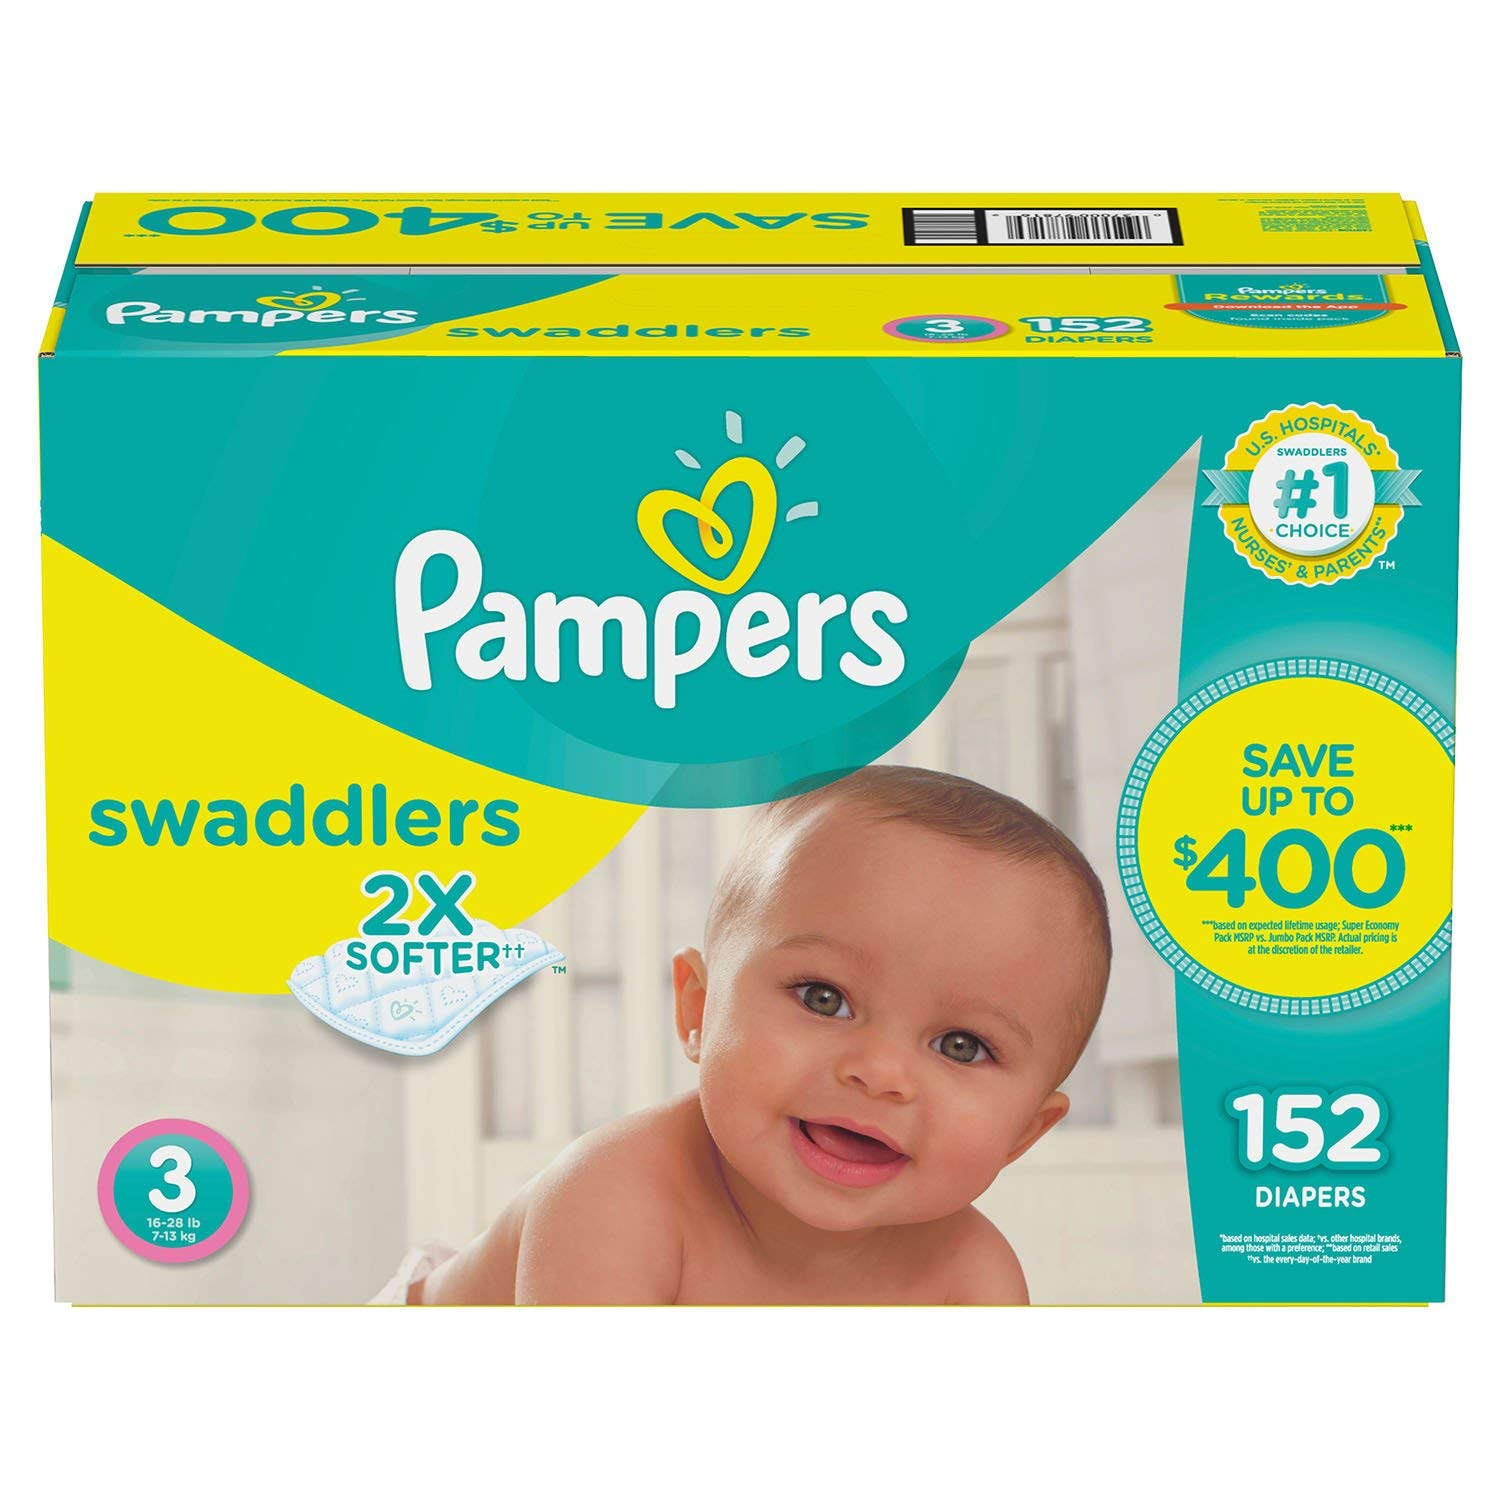 Pampers Swaddlers Diapers (Size 3, 154 ct.)